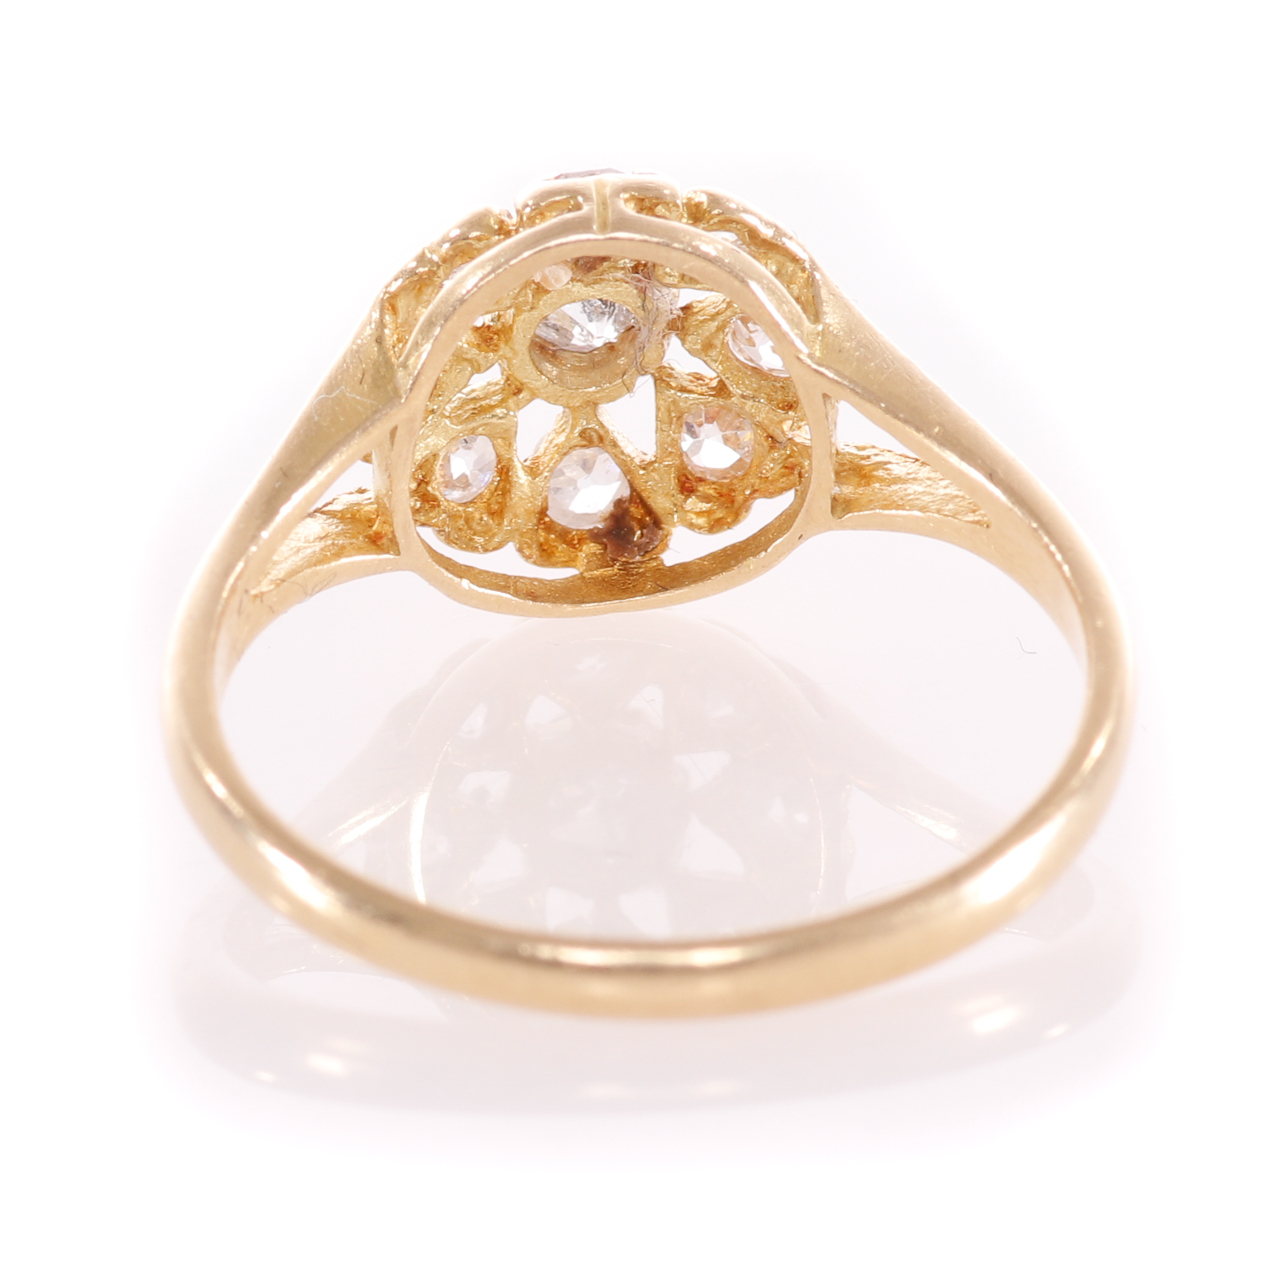 18ct Gold Rose Cut 0.35ct Diamond Cluster Ring - Image 6 of 8